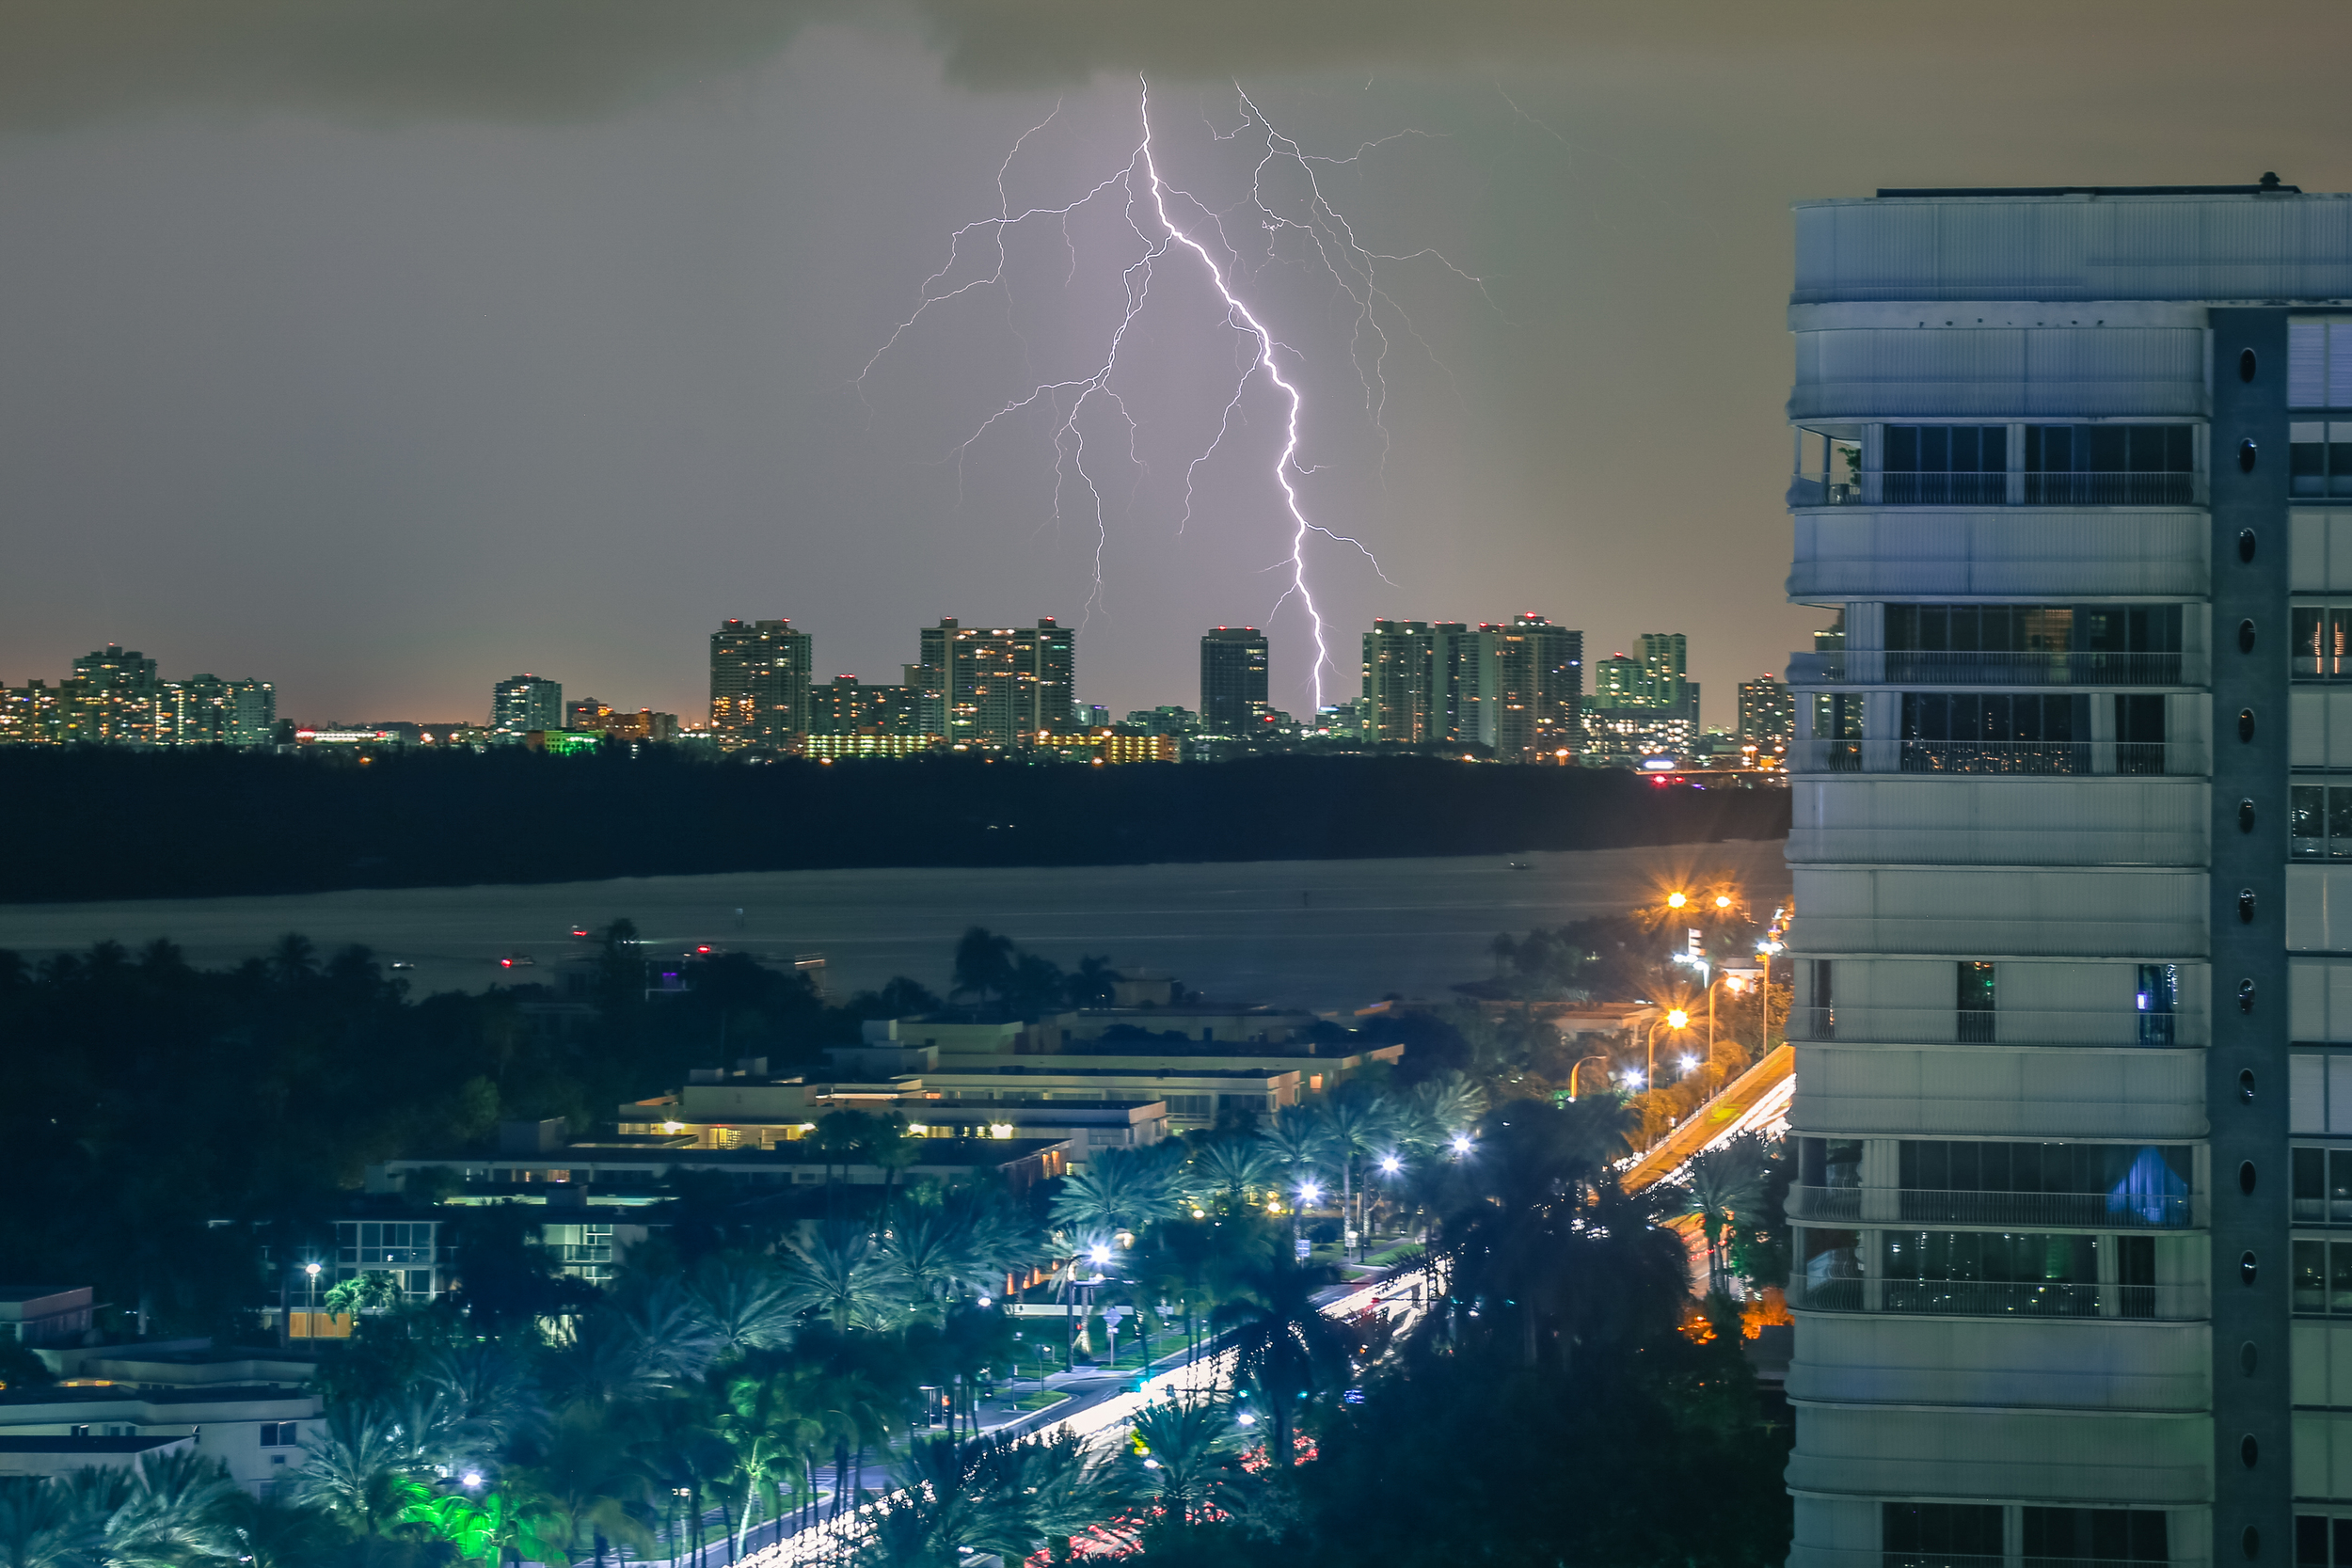 Lightening strikes in Miami Beach, Florida